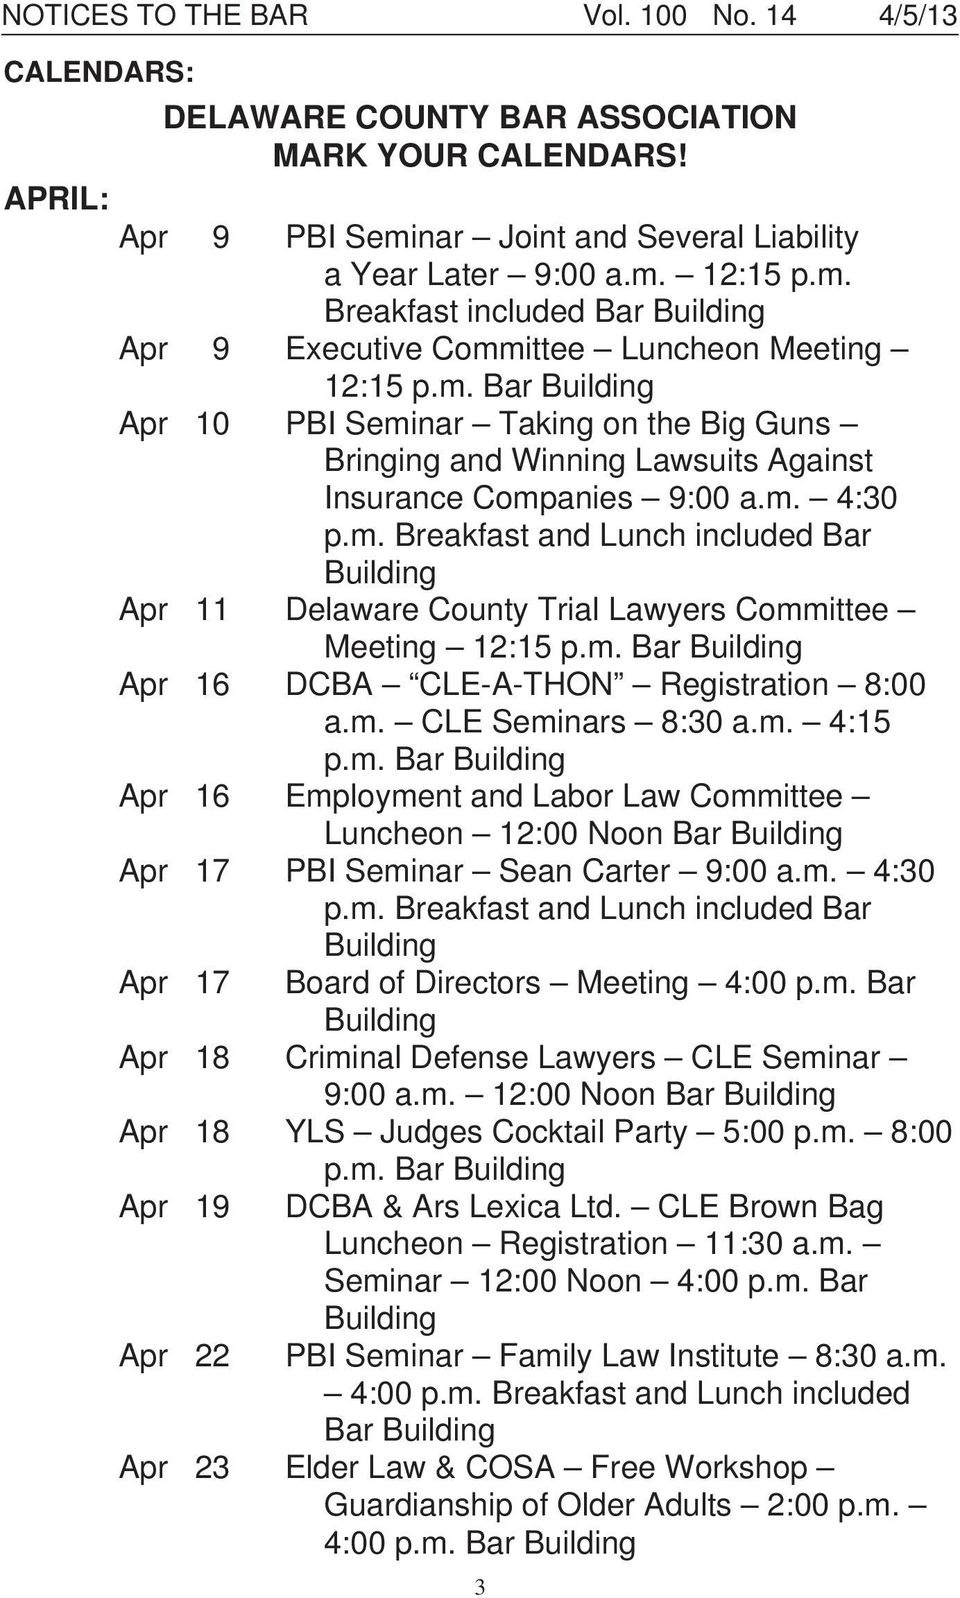 m. 4:30 p.m. Breakfast and Lunch included Bar Building Apr 11 Delaware County Trial Lawyers Committee Meeting 12:15 p.m. Bar Building Apr 16 DCBA CLE-A-THON Registration 8:00 a.m. CLE Seminars 8:30 a.